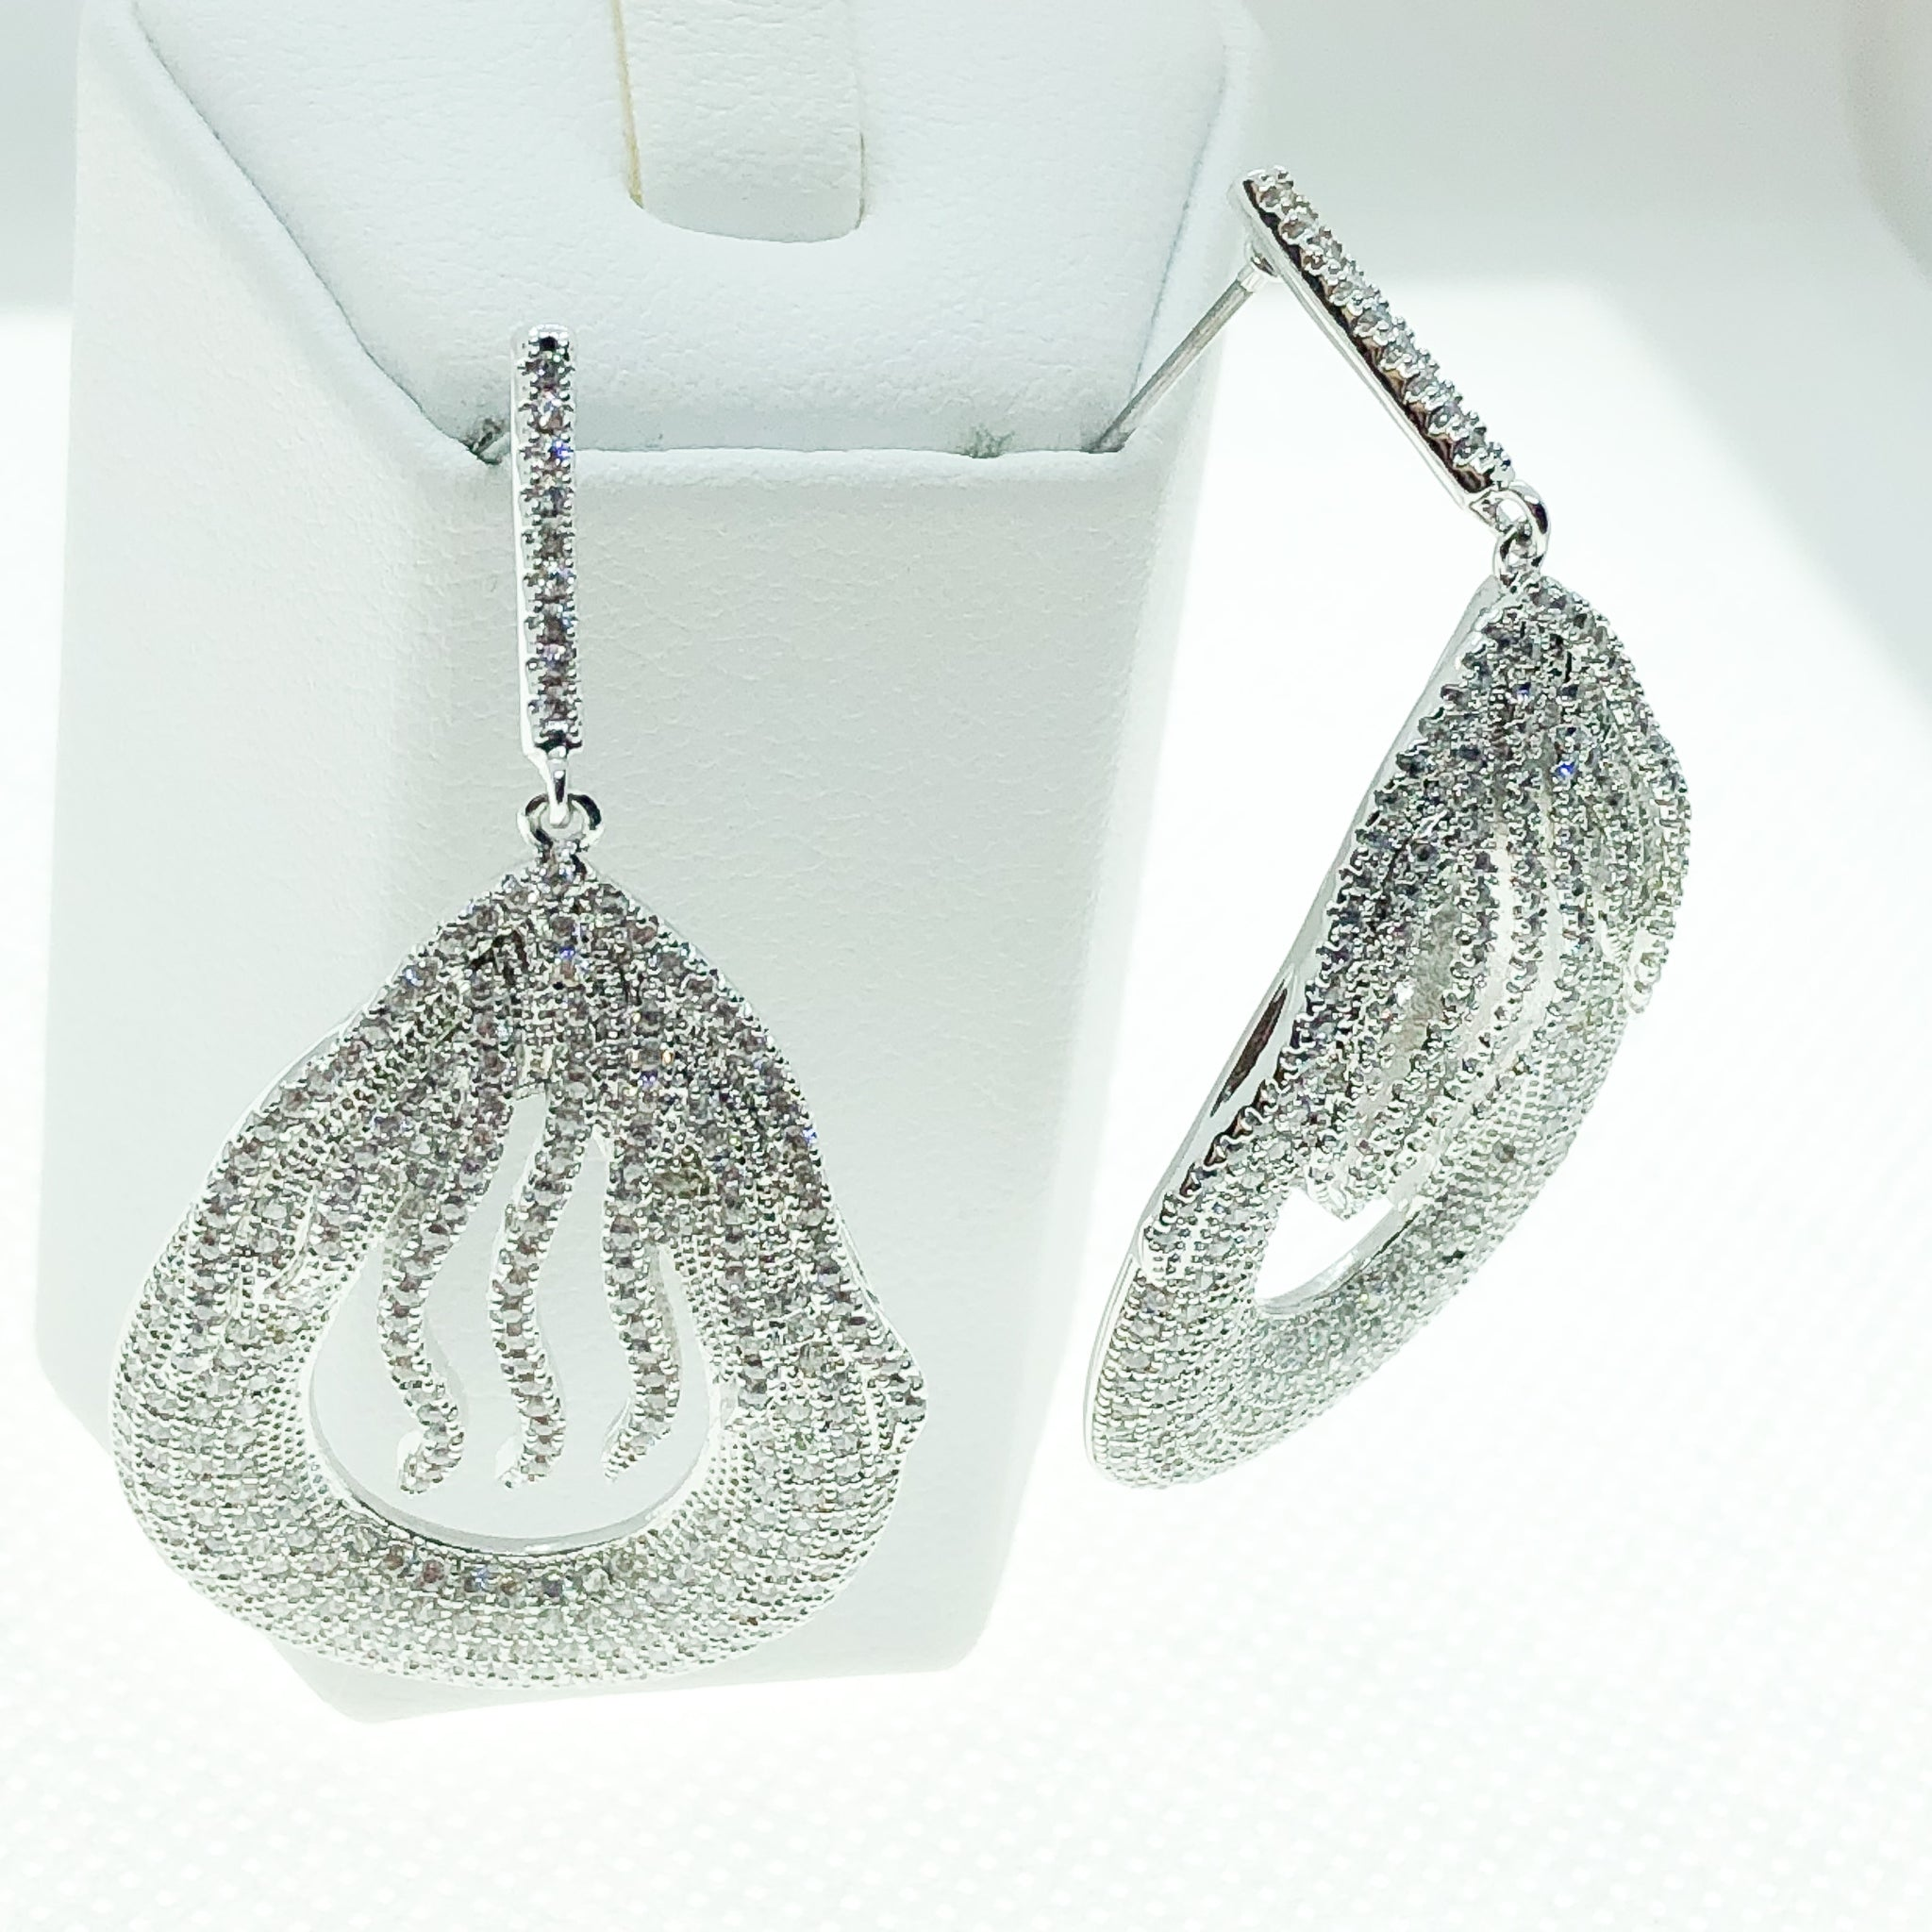 ID: E4851A Women Fashion Jewelry 18K White Gold GF Diamonique Earrings Lady Engagement Wedding Drop Dangle